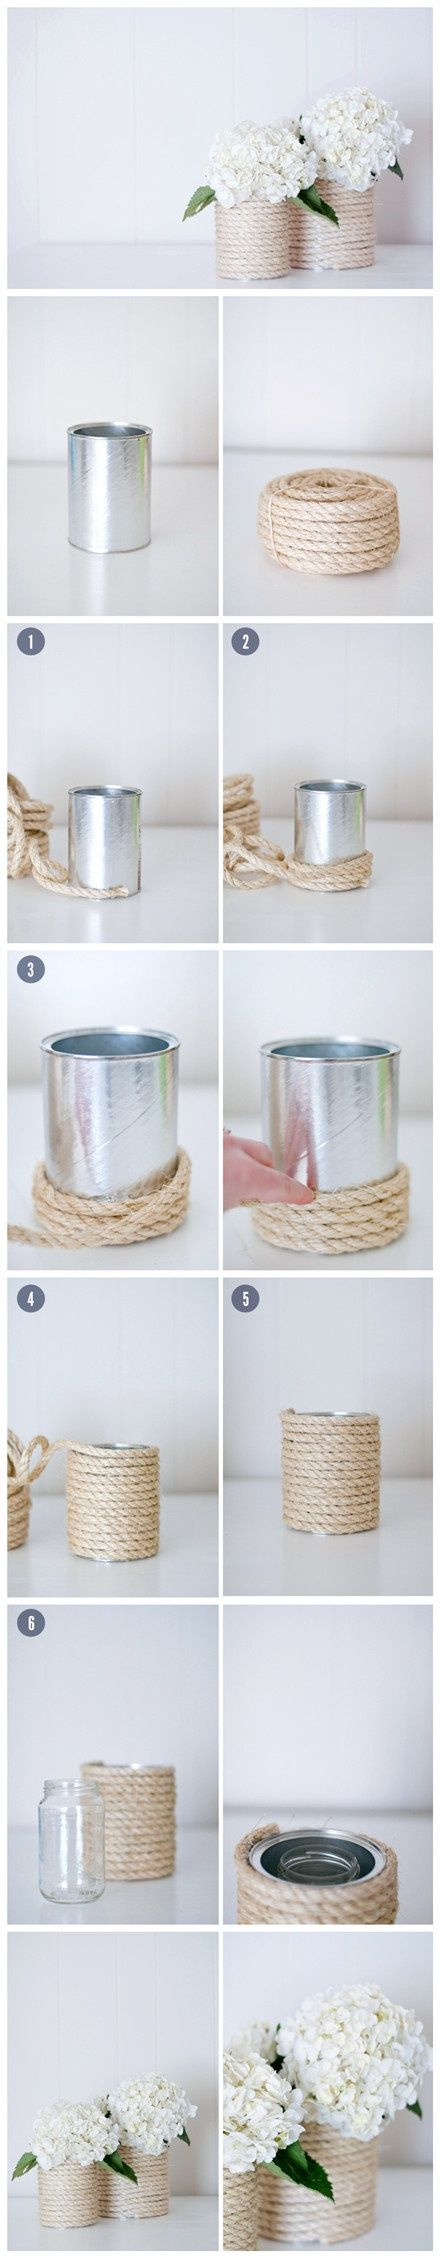 Shabby-licious!! I would use a more natural jute rope you can usually find at your local dollar store :) check out The Metal Barn to see what awesome rustic finds we're making in the barn!! Rope covered coffee cans, jars, etc... nice to give something in